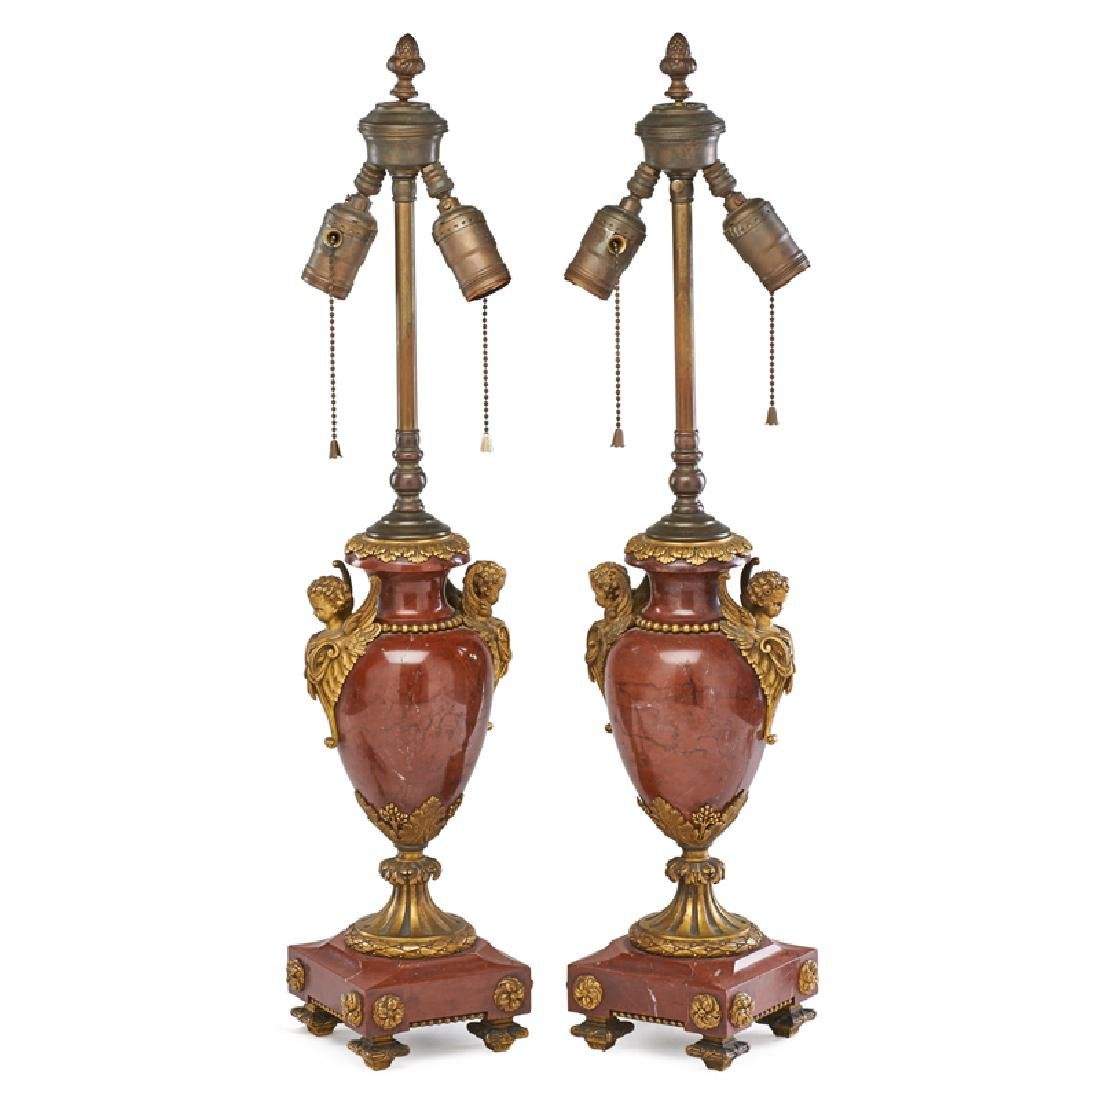 PAIR OF LOUIS XVI STYLE TABLE LAMPS